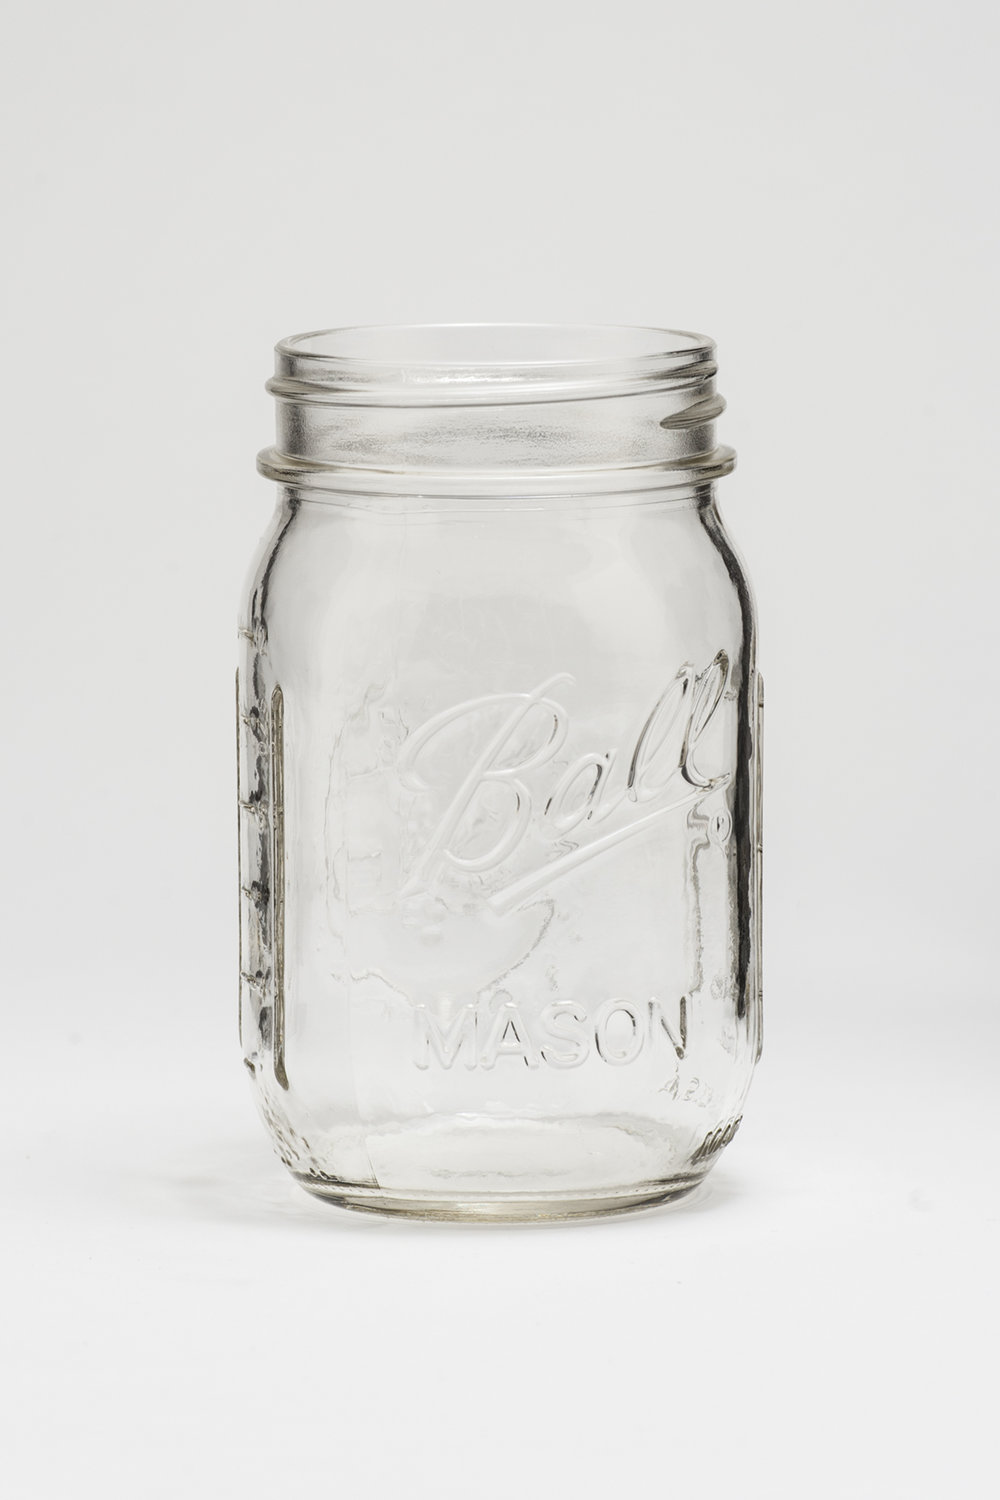 Mason Jar Glass 16 oz. $0.65